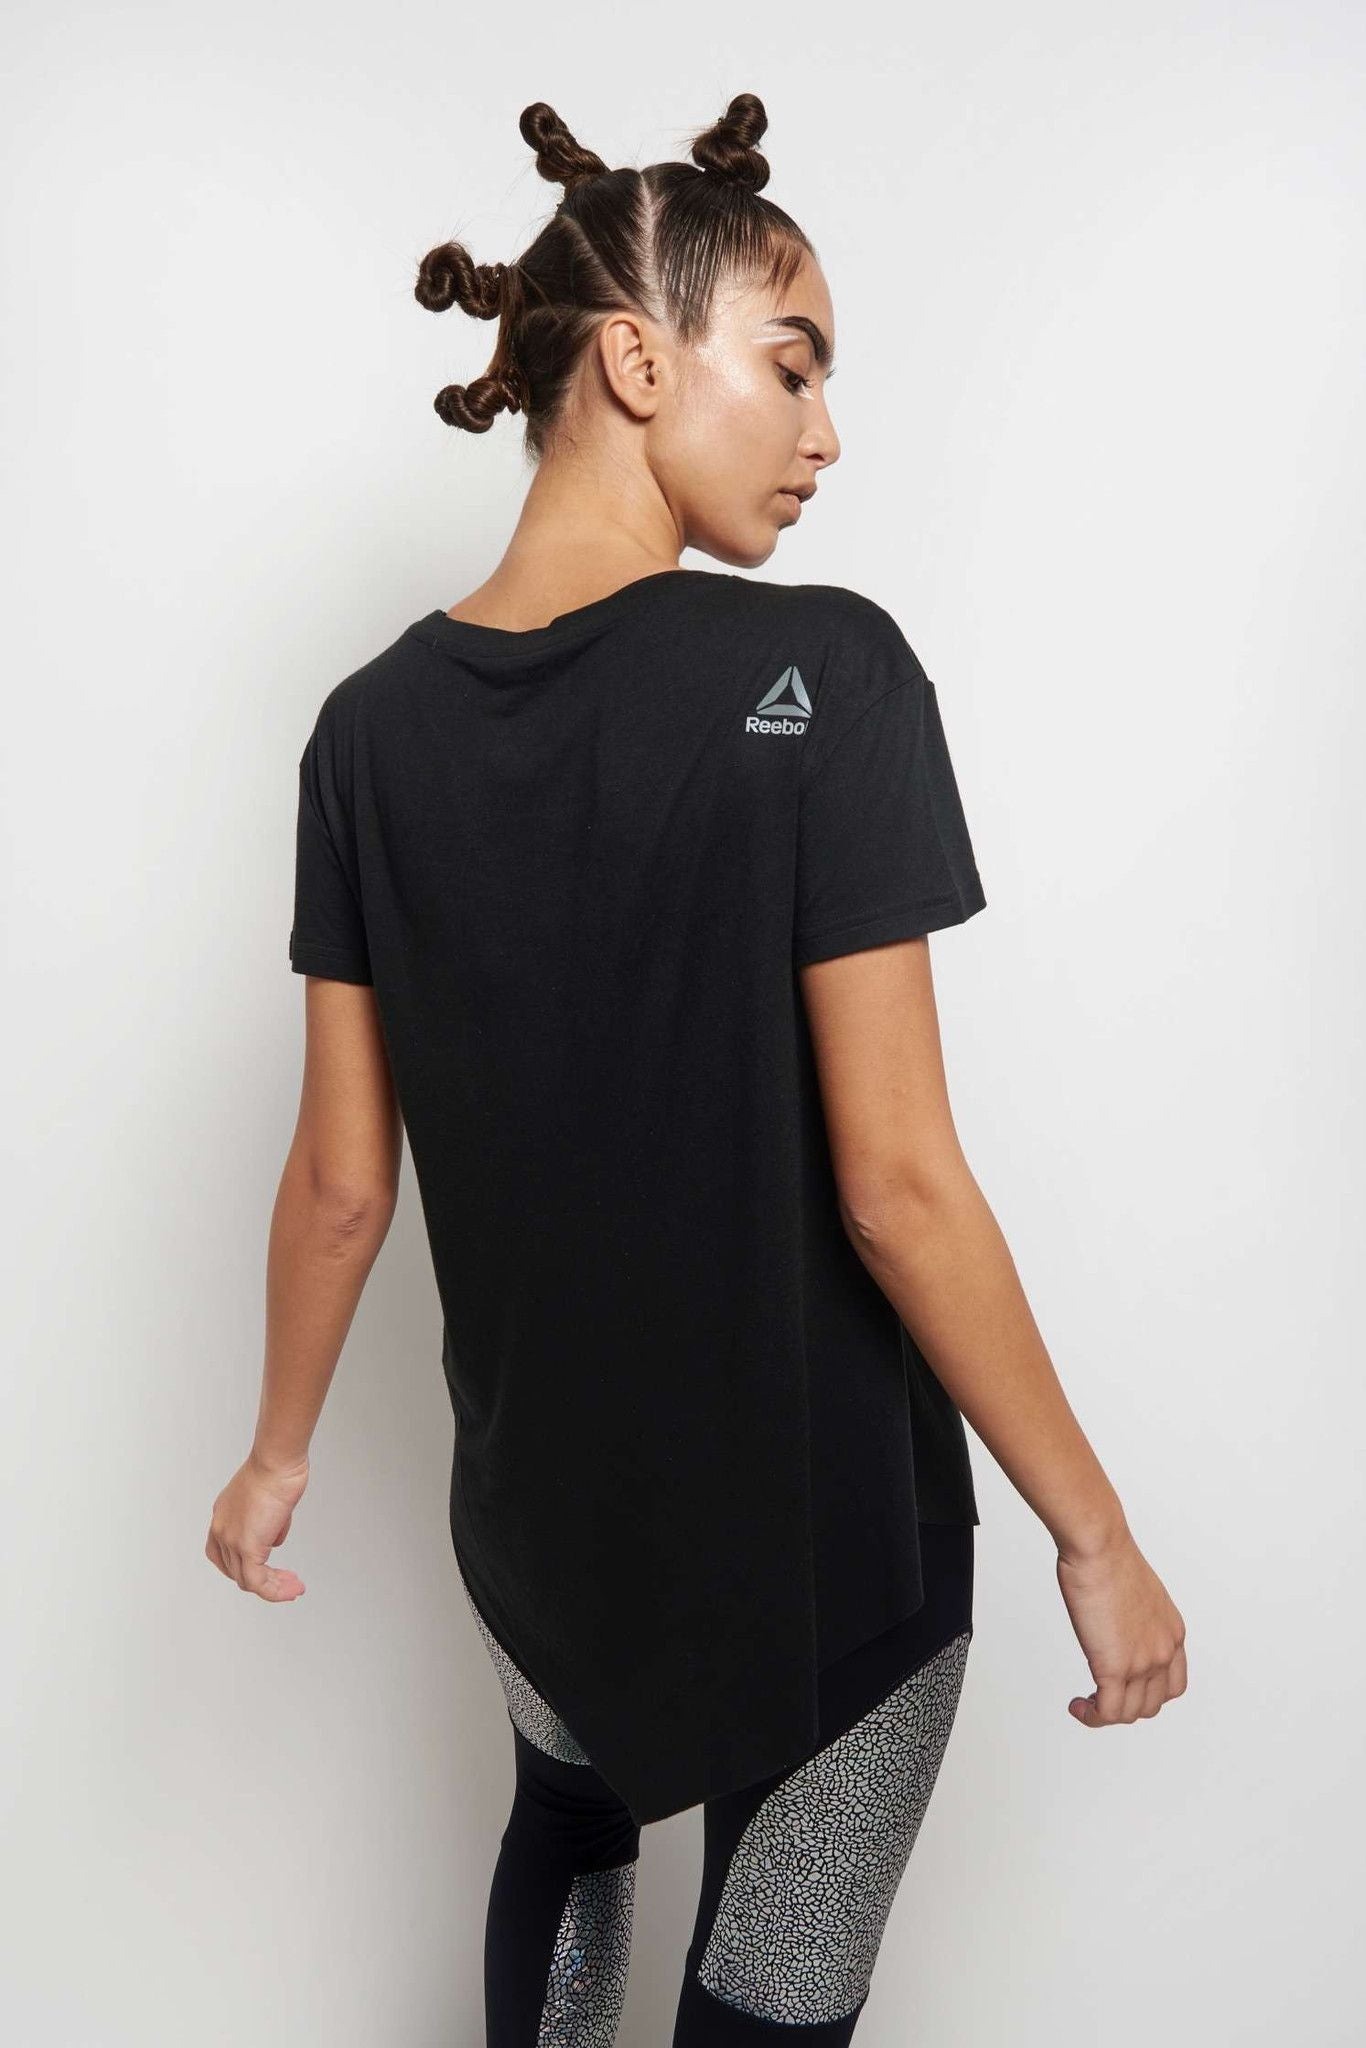 Reebok Dance Distressed Tee - Black image 2 - The Sports Edit